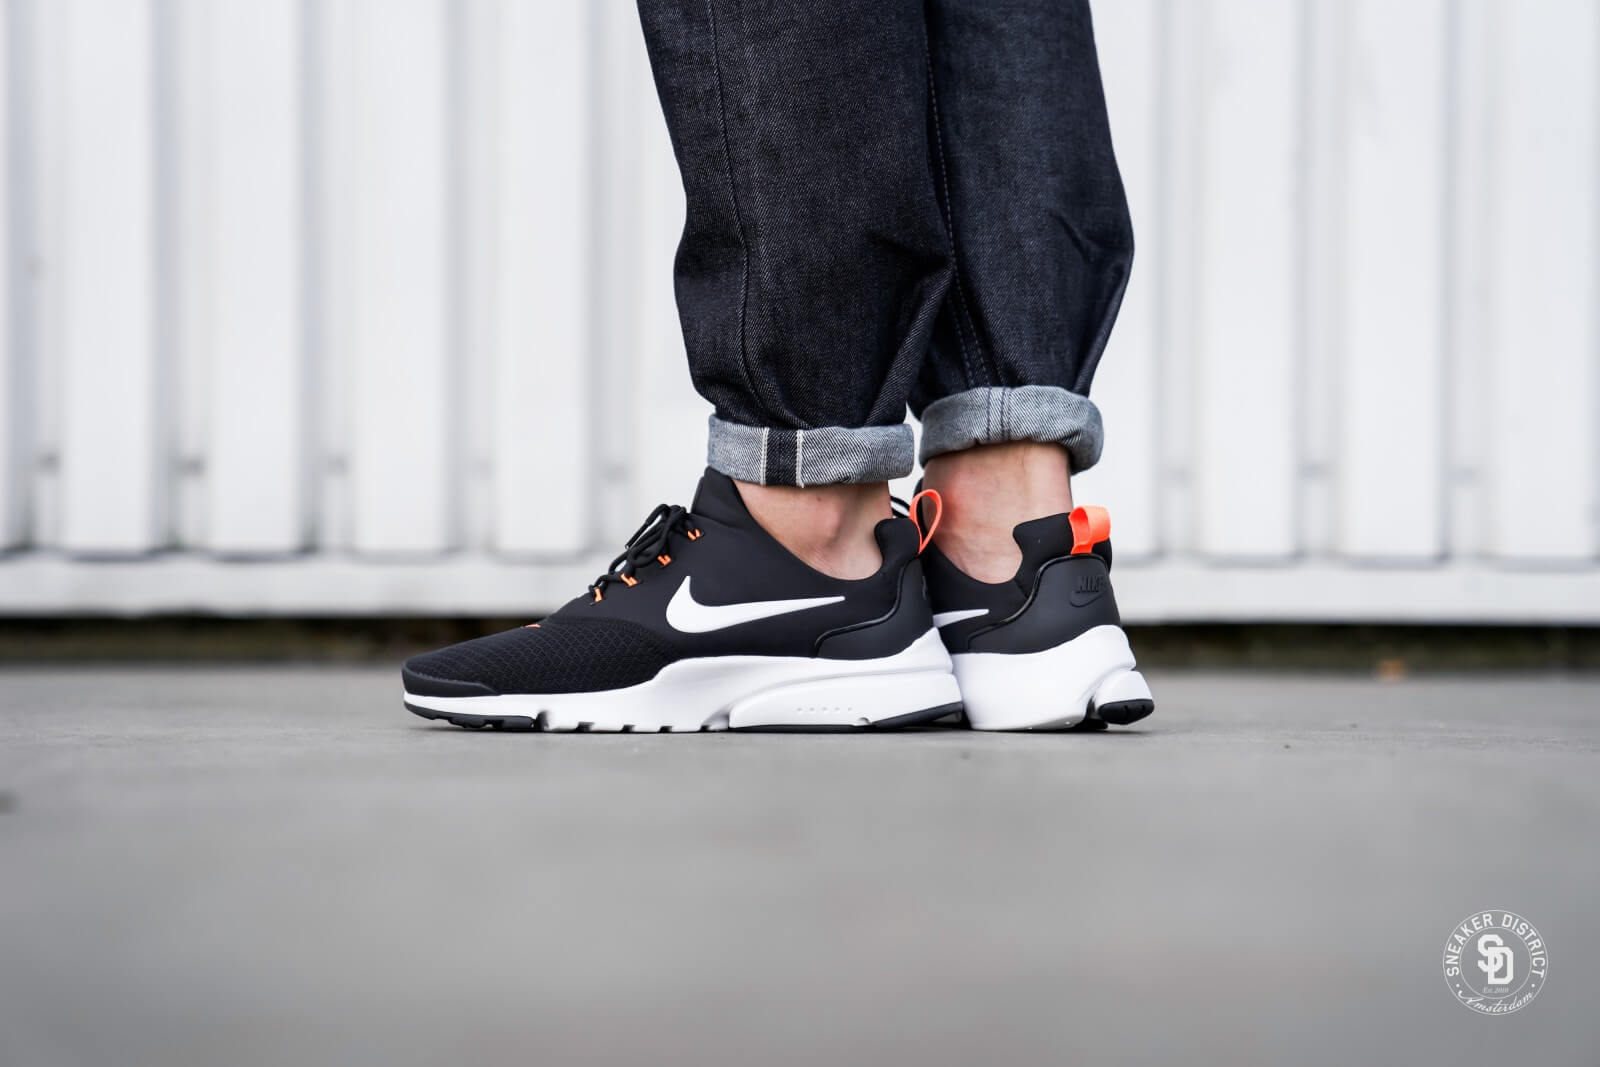 Nike Presto Fly Just Do It Black/White-Total Orange - AQ9688-001